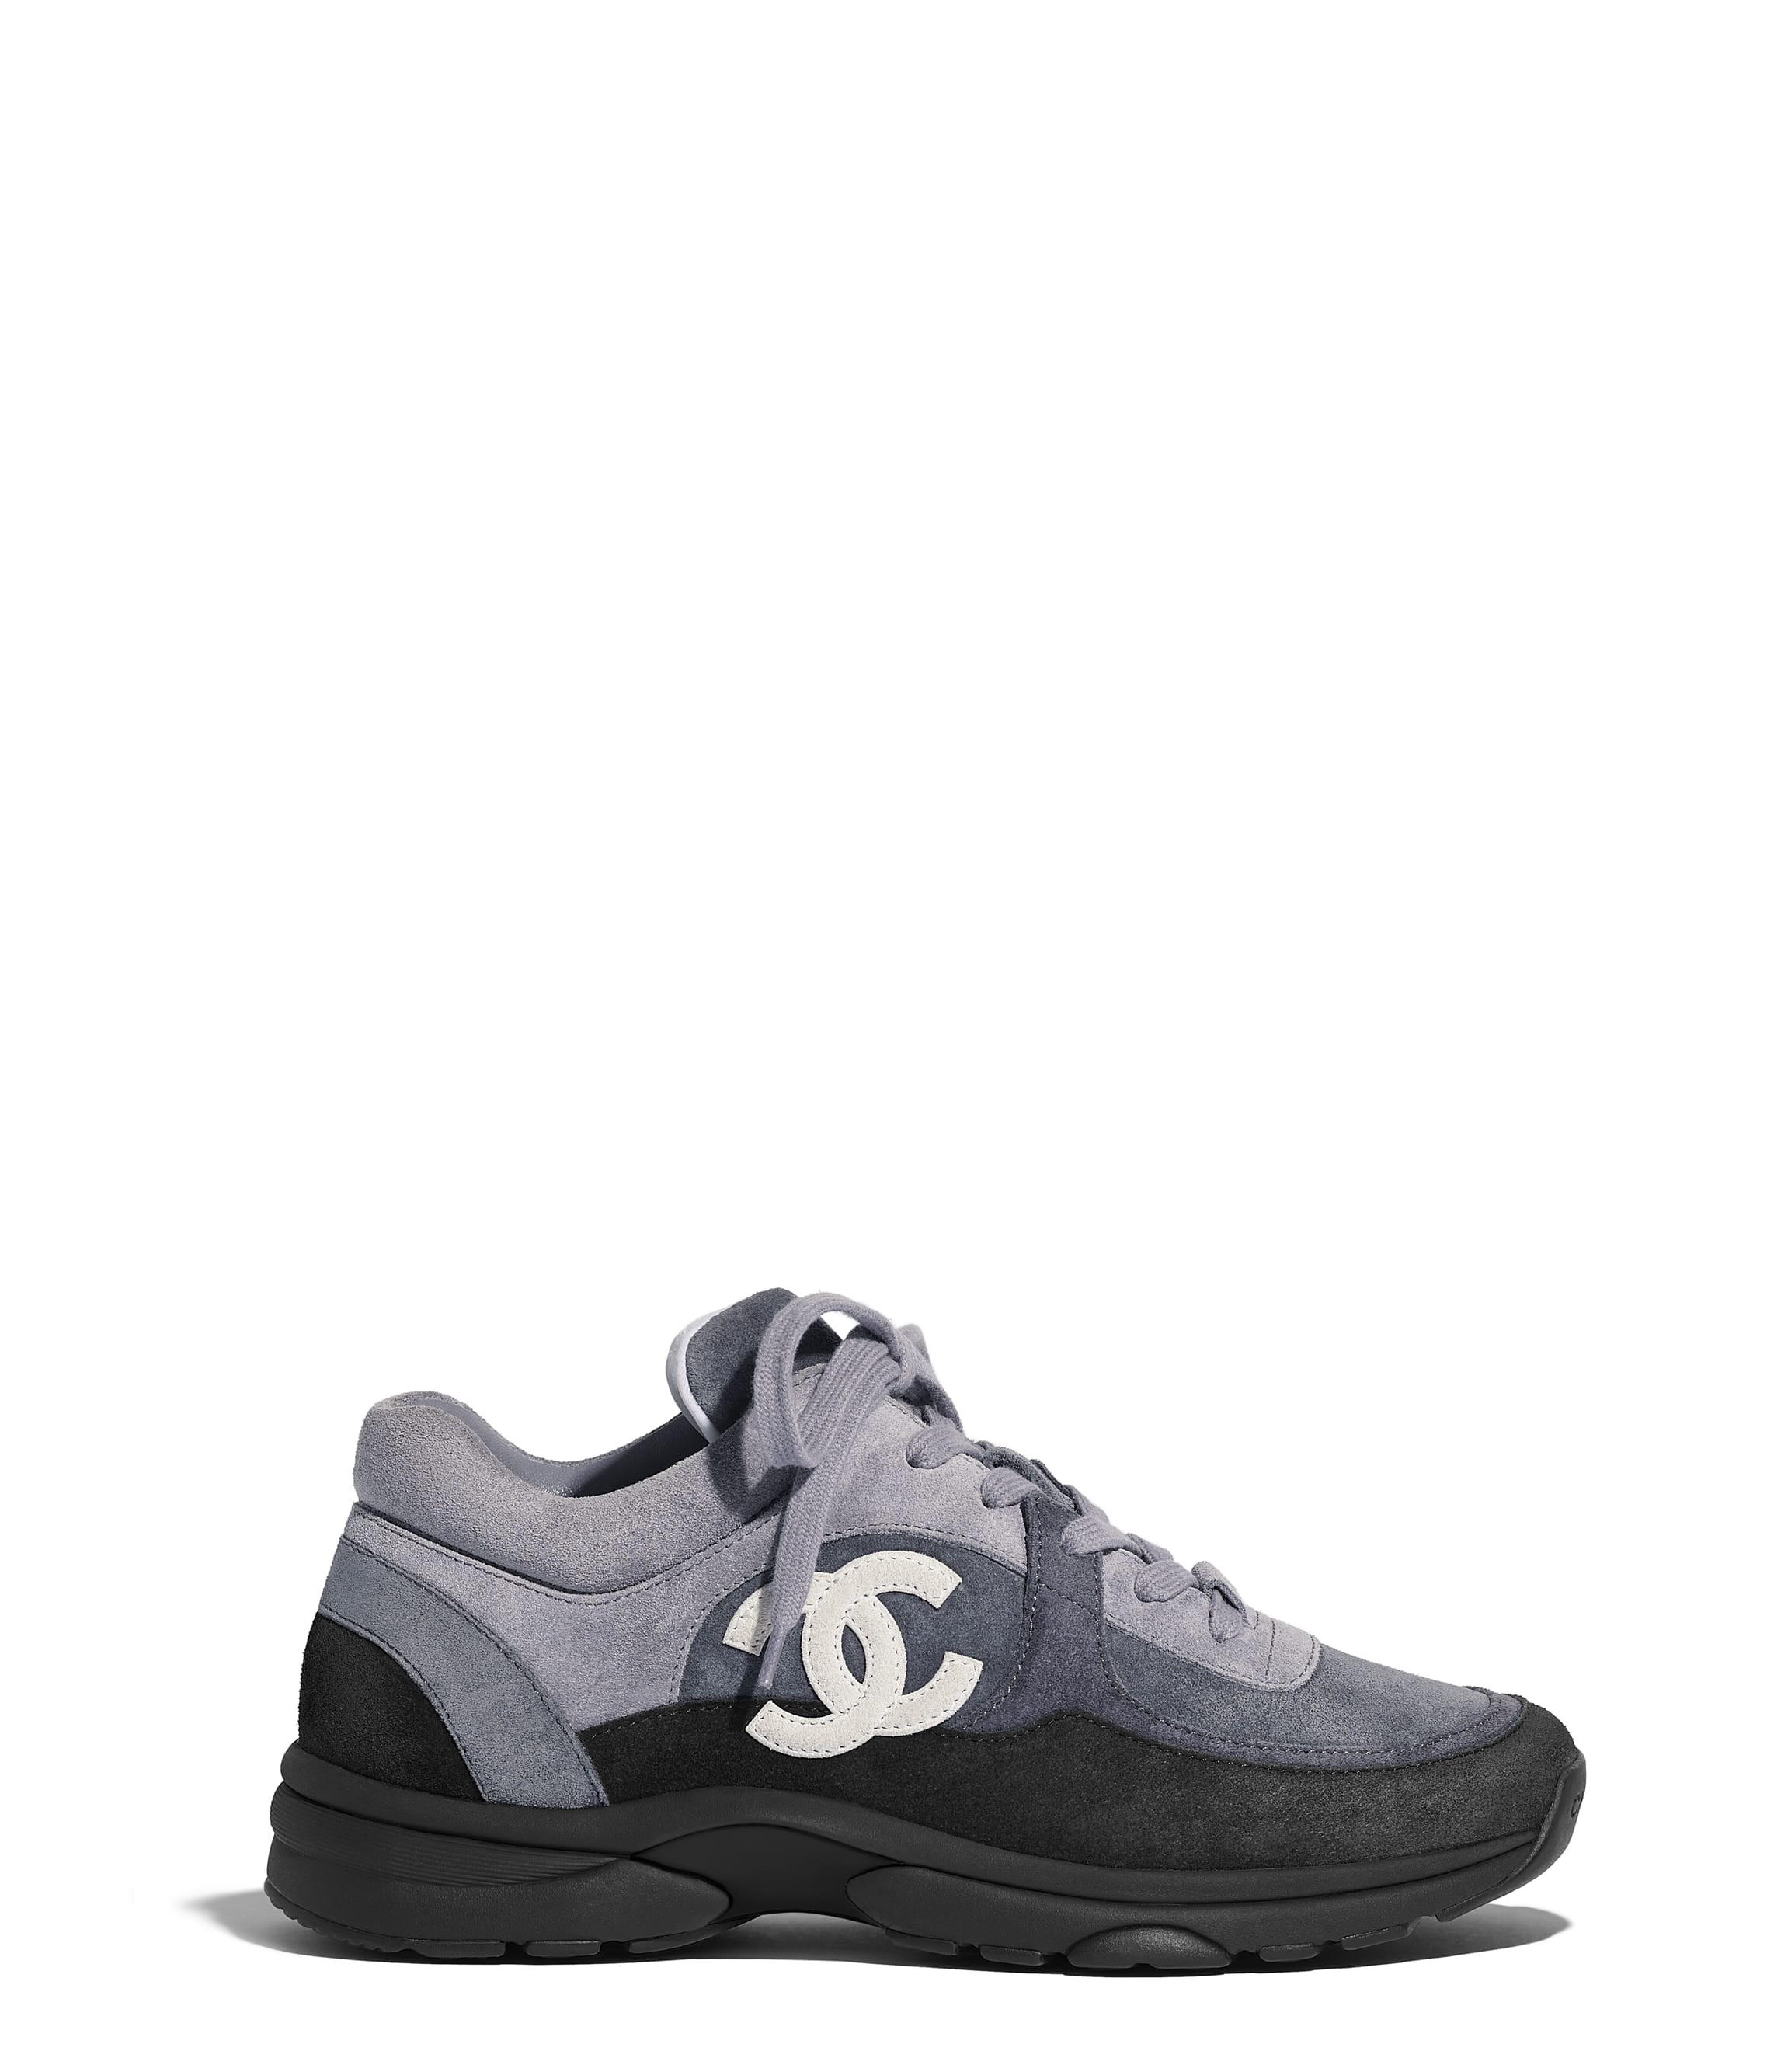 Sneakers - Shoes - CHANEL e43fc642b31